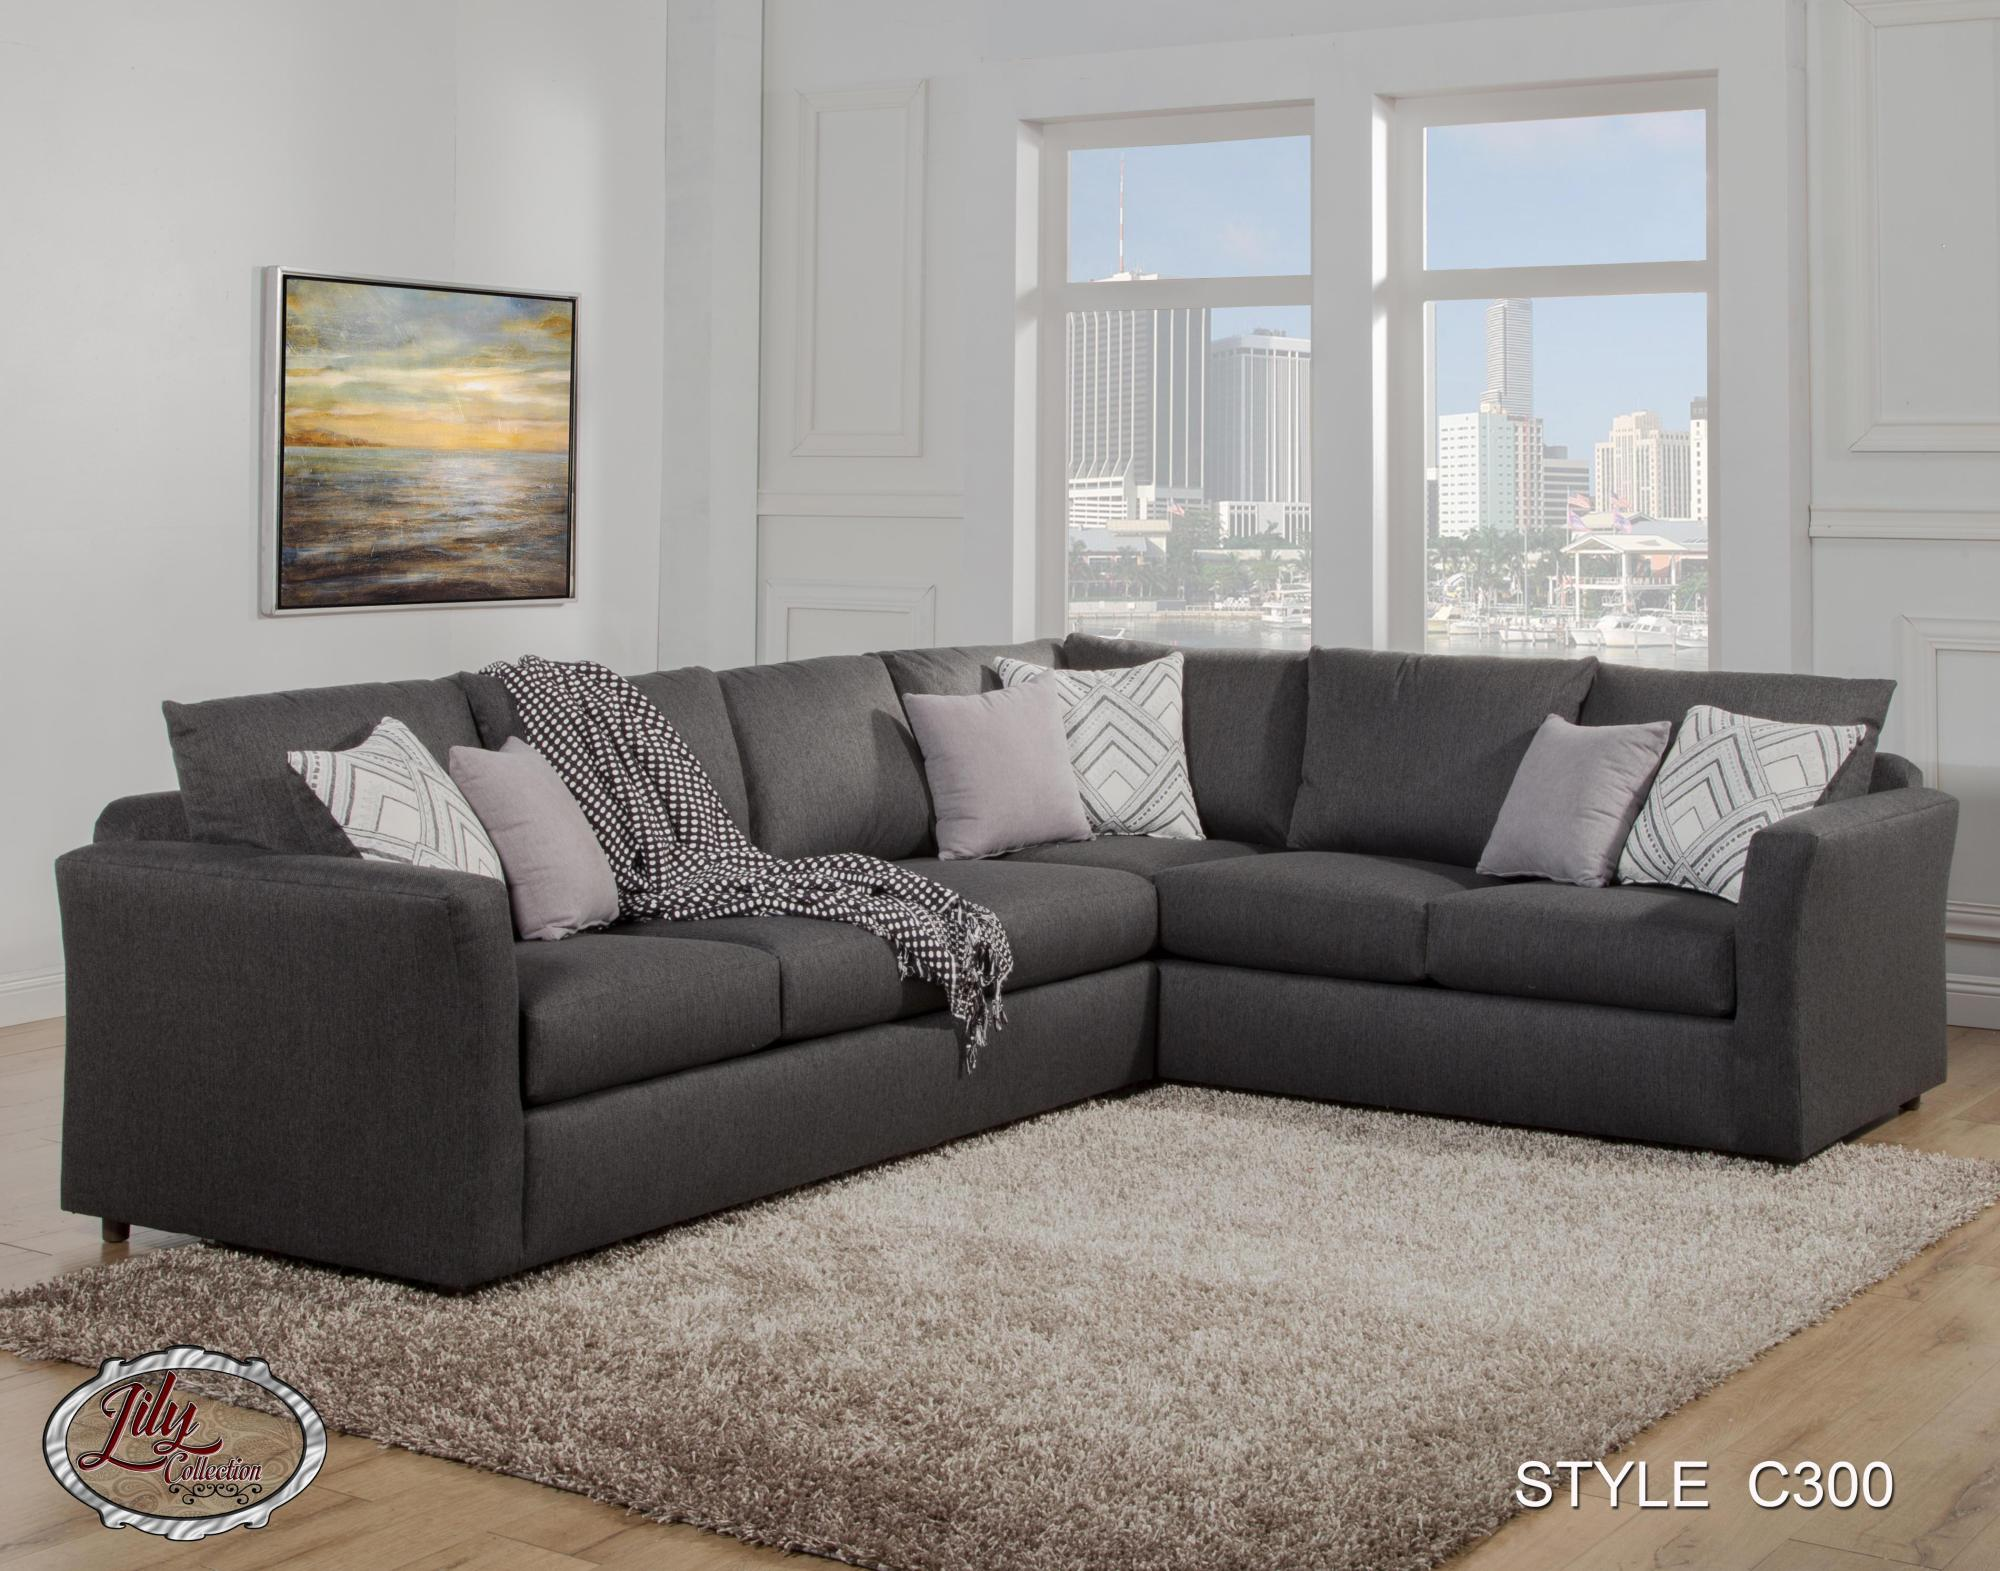 C300 sectional